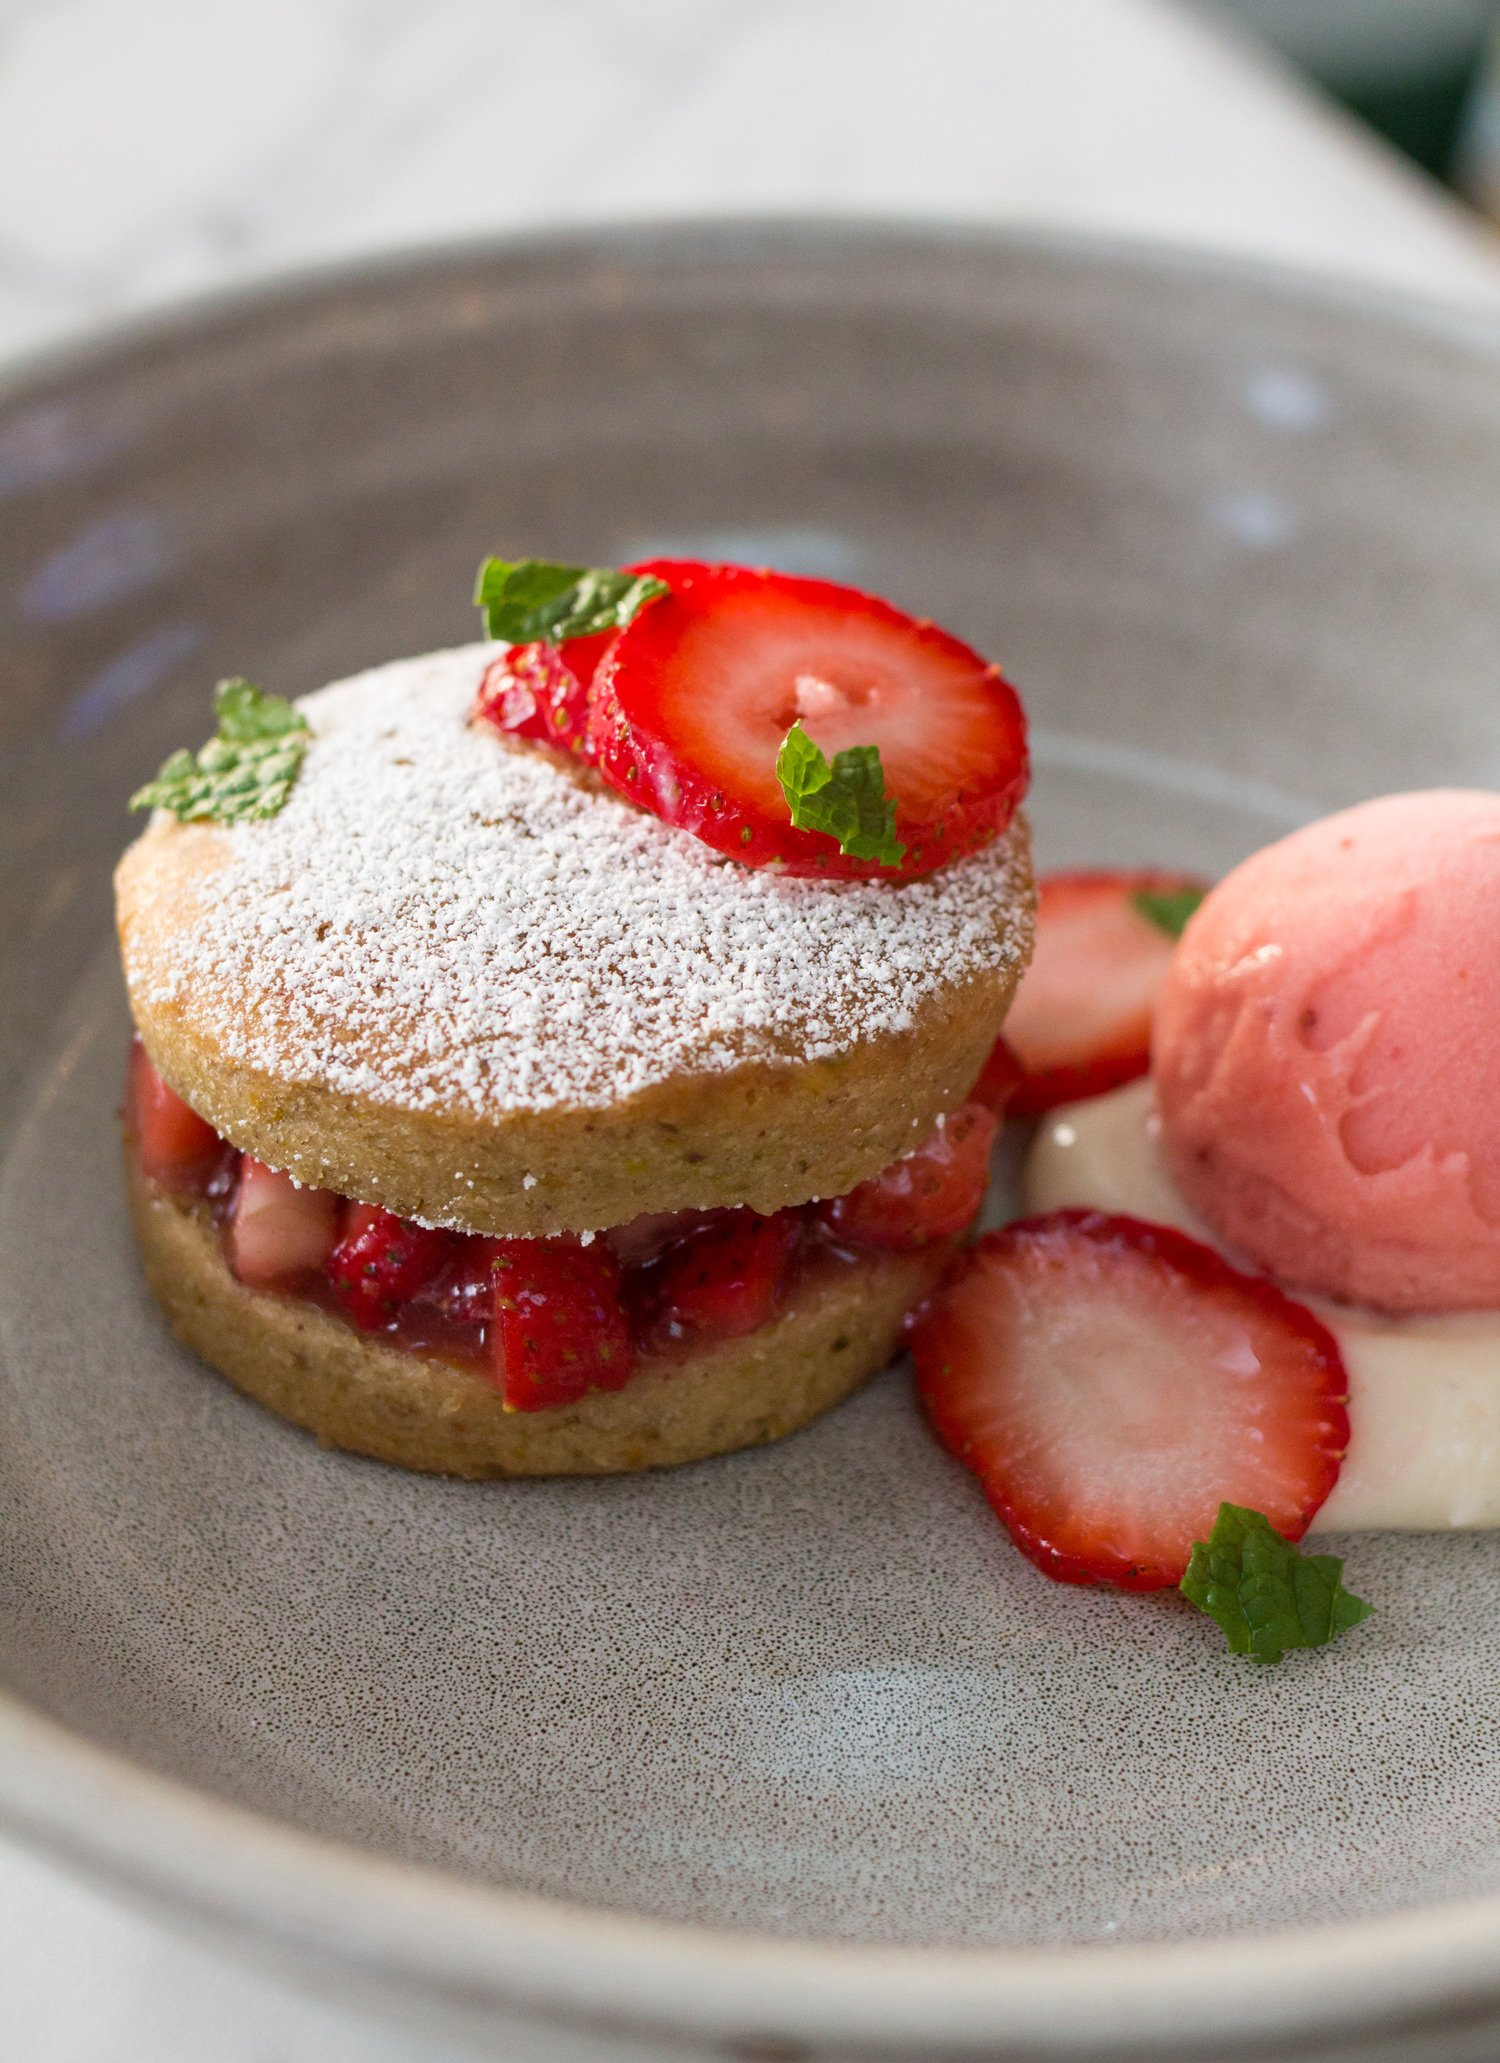 The Vegan Strawberry Shortcake from The Henry Restaurant In Coronado